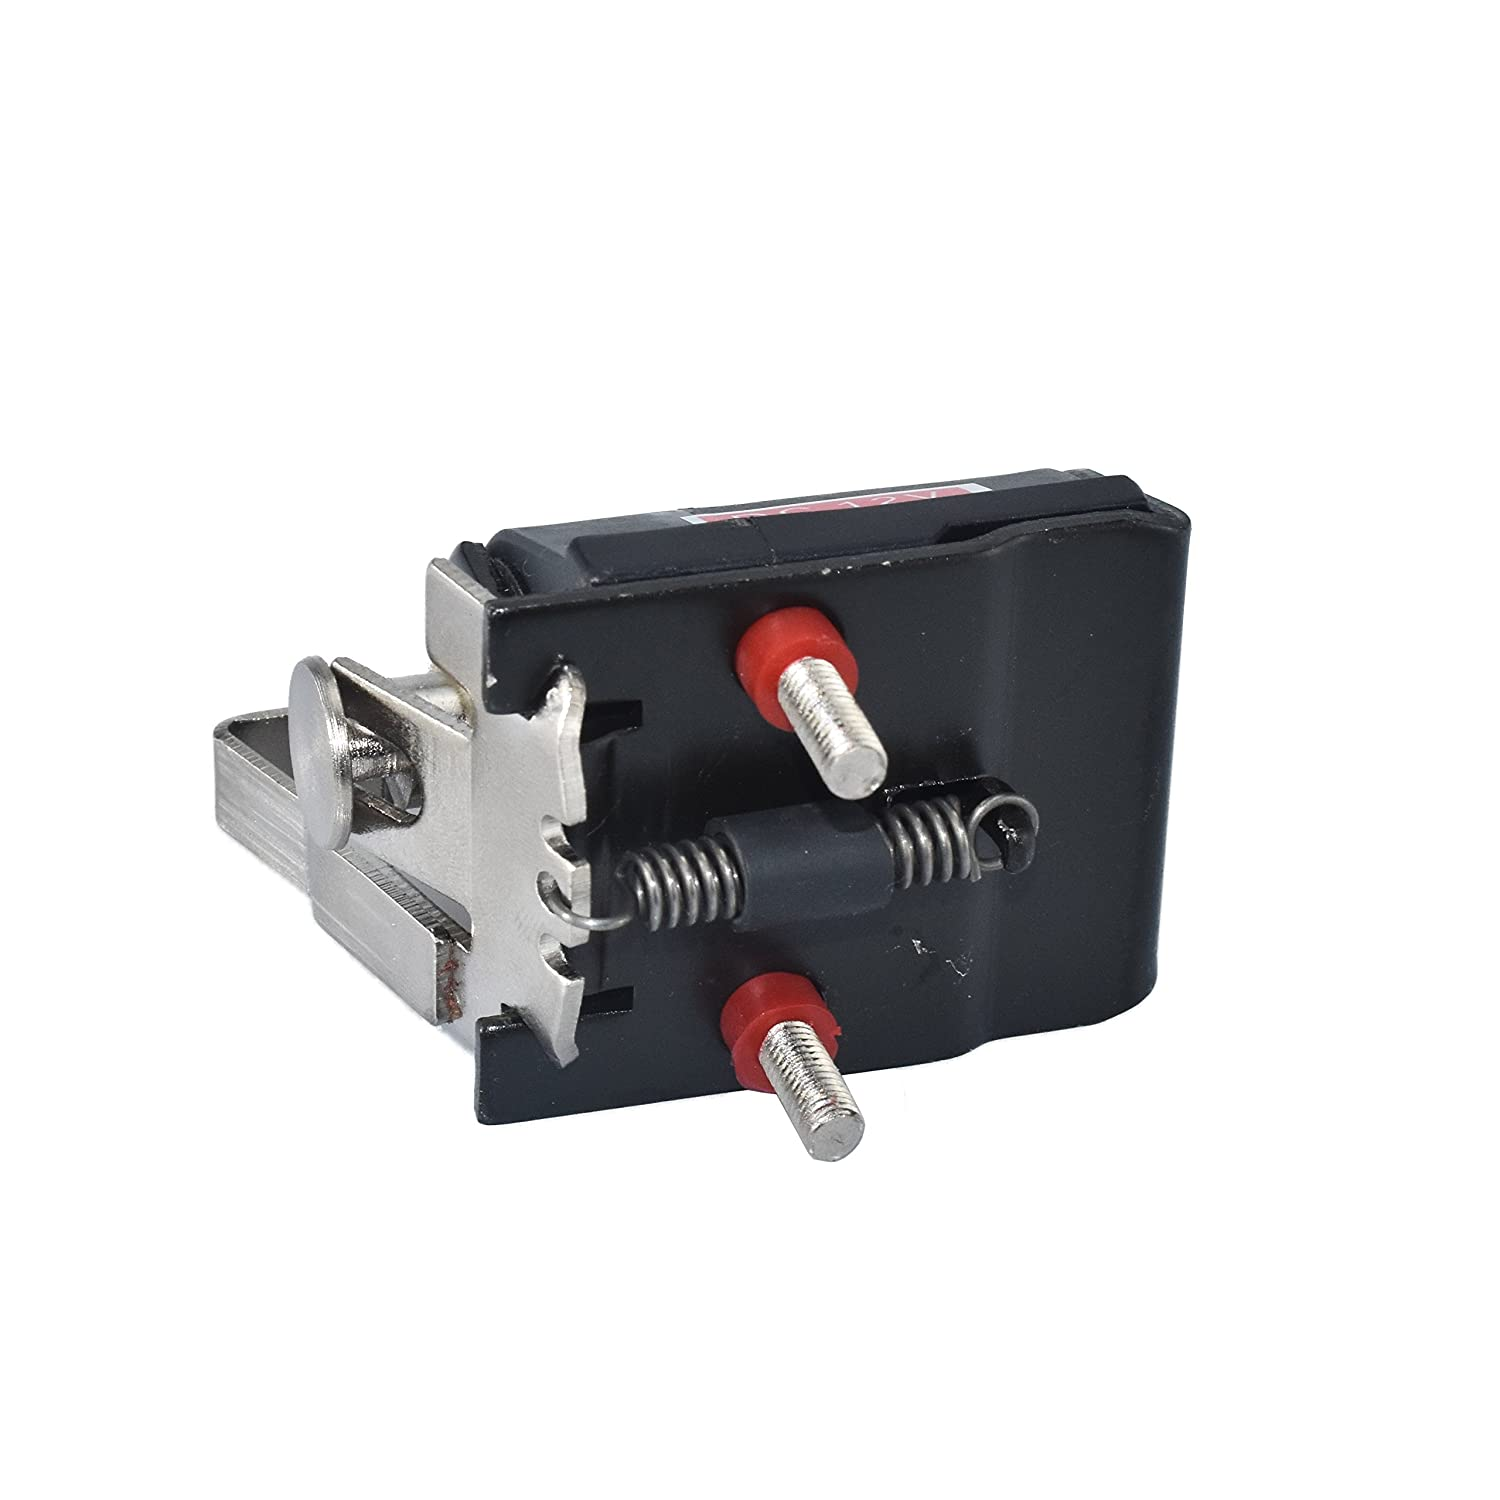 Fule Shut Off Solenoid 26214 for Stanadyne Injection Pump Roosa Master 6.2 6.9 7.3 5.7 6.5 John Deere 12VDC 6 MONTH WARRANTY FREE RETURN May Spare Parts